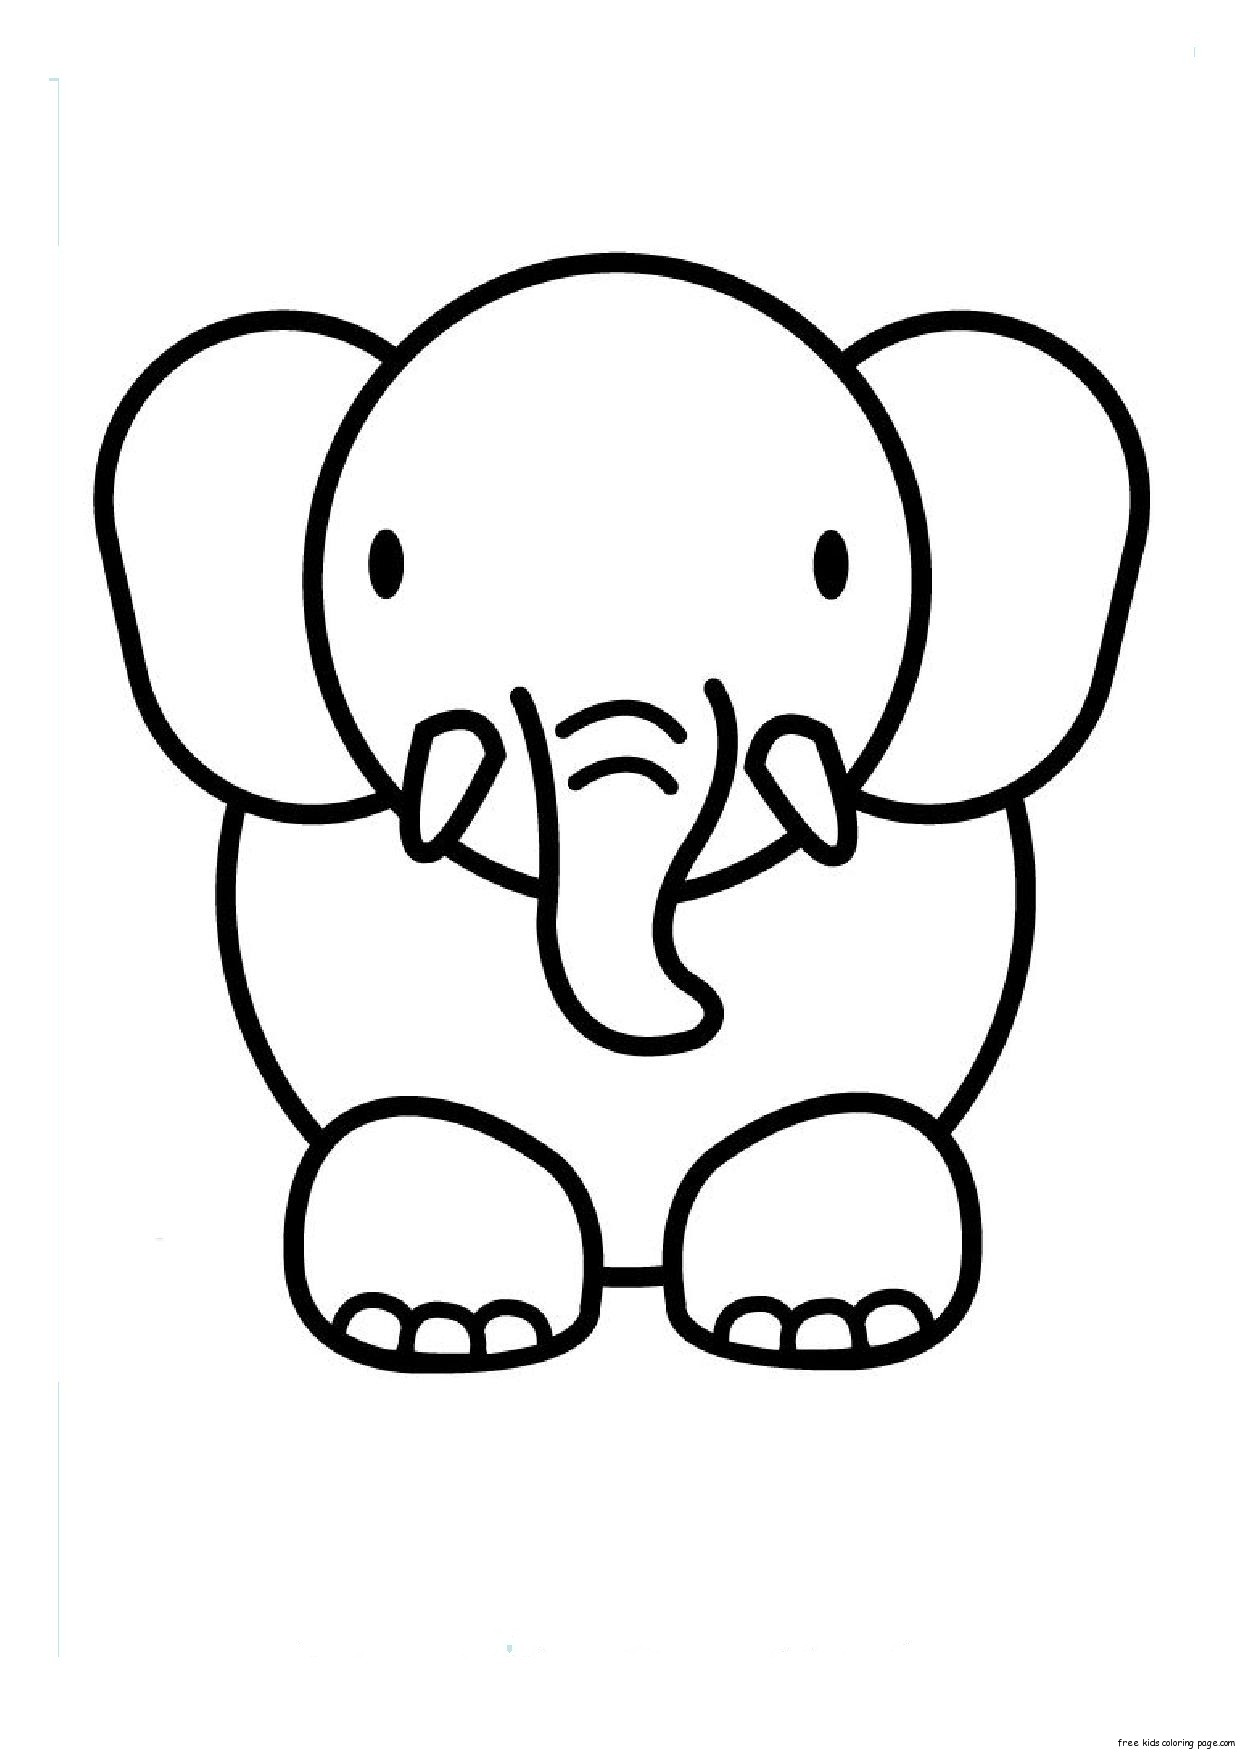 Elephant Images For Kids.